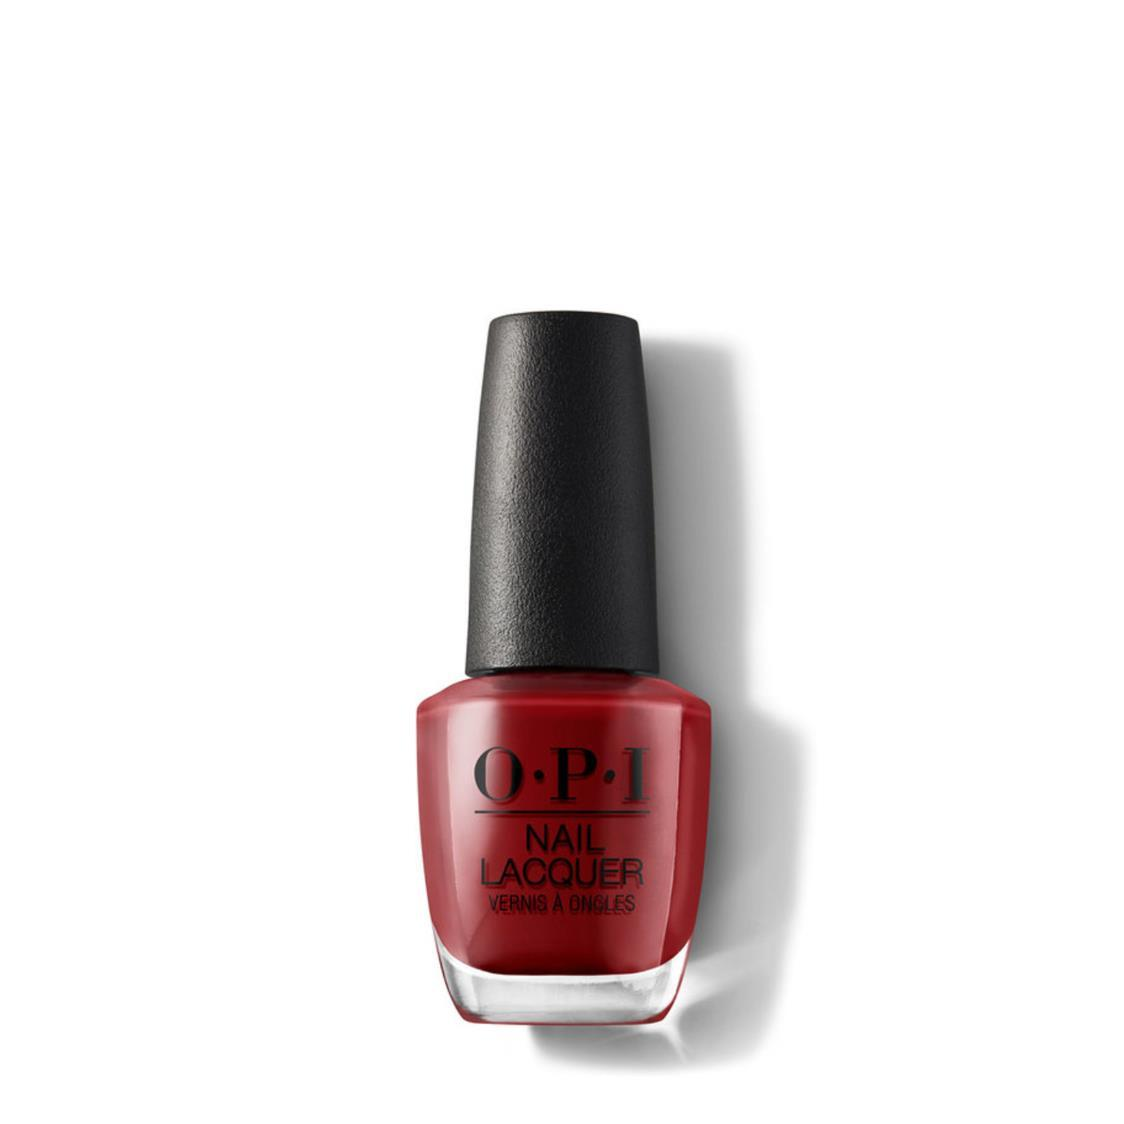 Opi Fall Collection 2018 Nail Lacquer I Love You Just Be-Cusco 15ml